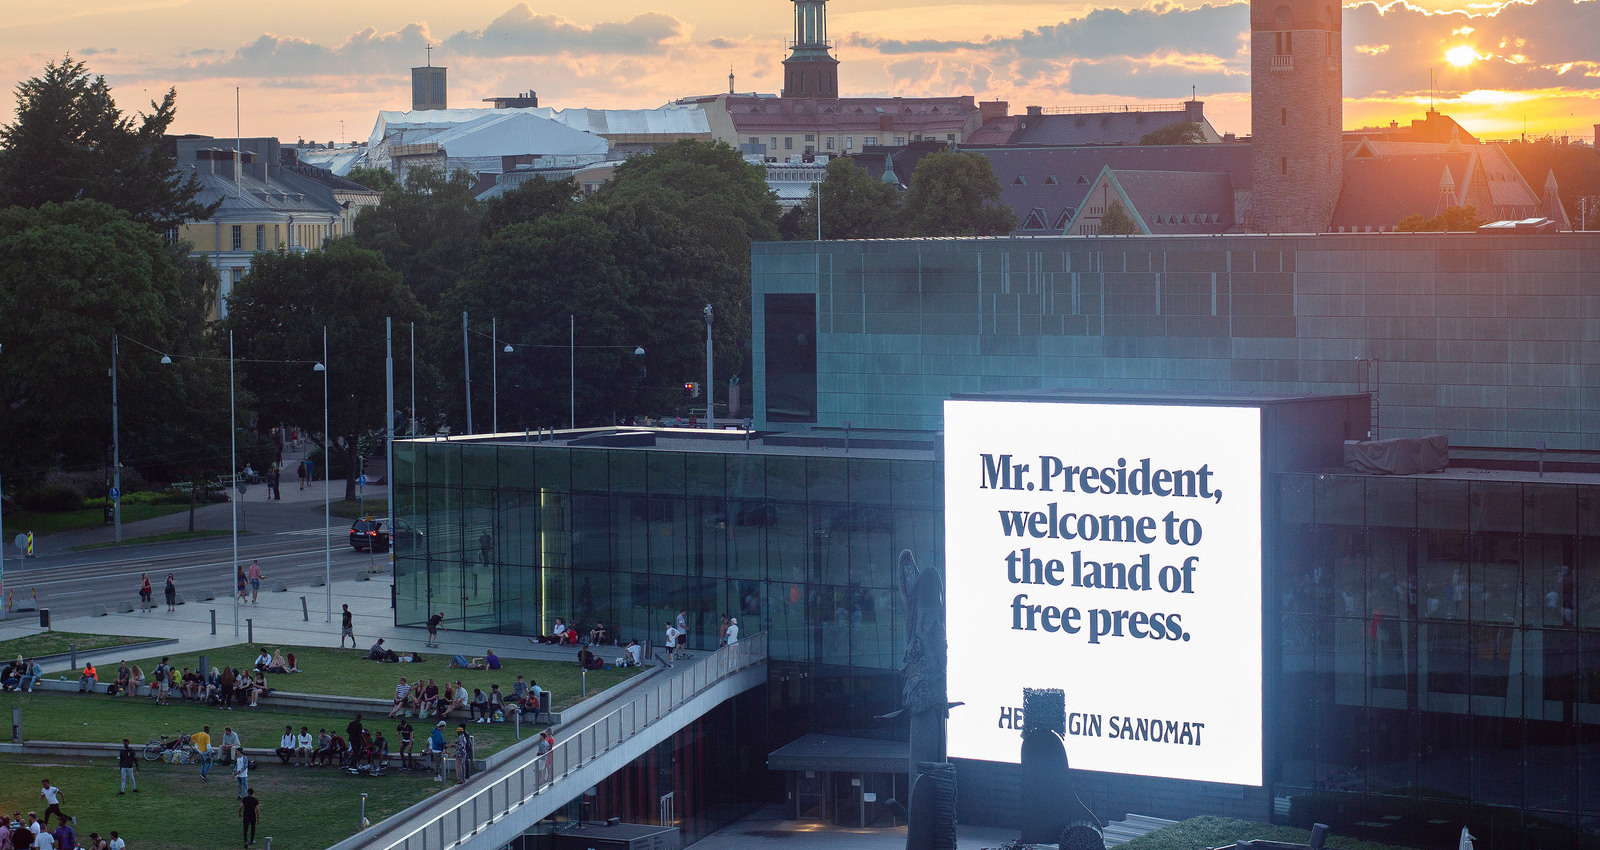 The Land of Free Press